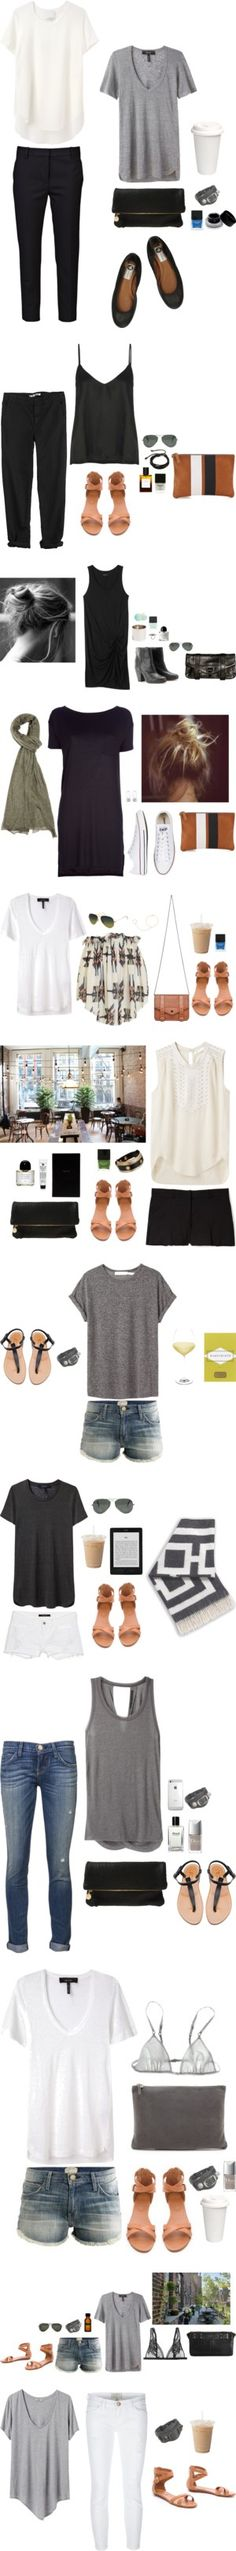 """S/S Uniform"" by kristin-gp ❤ liked on Polyvore"